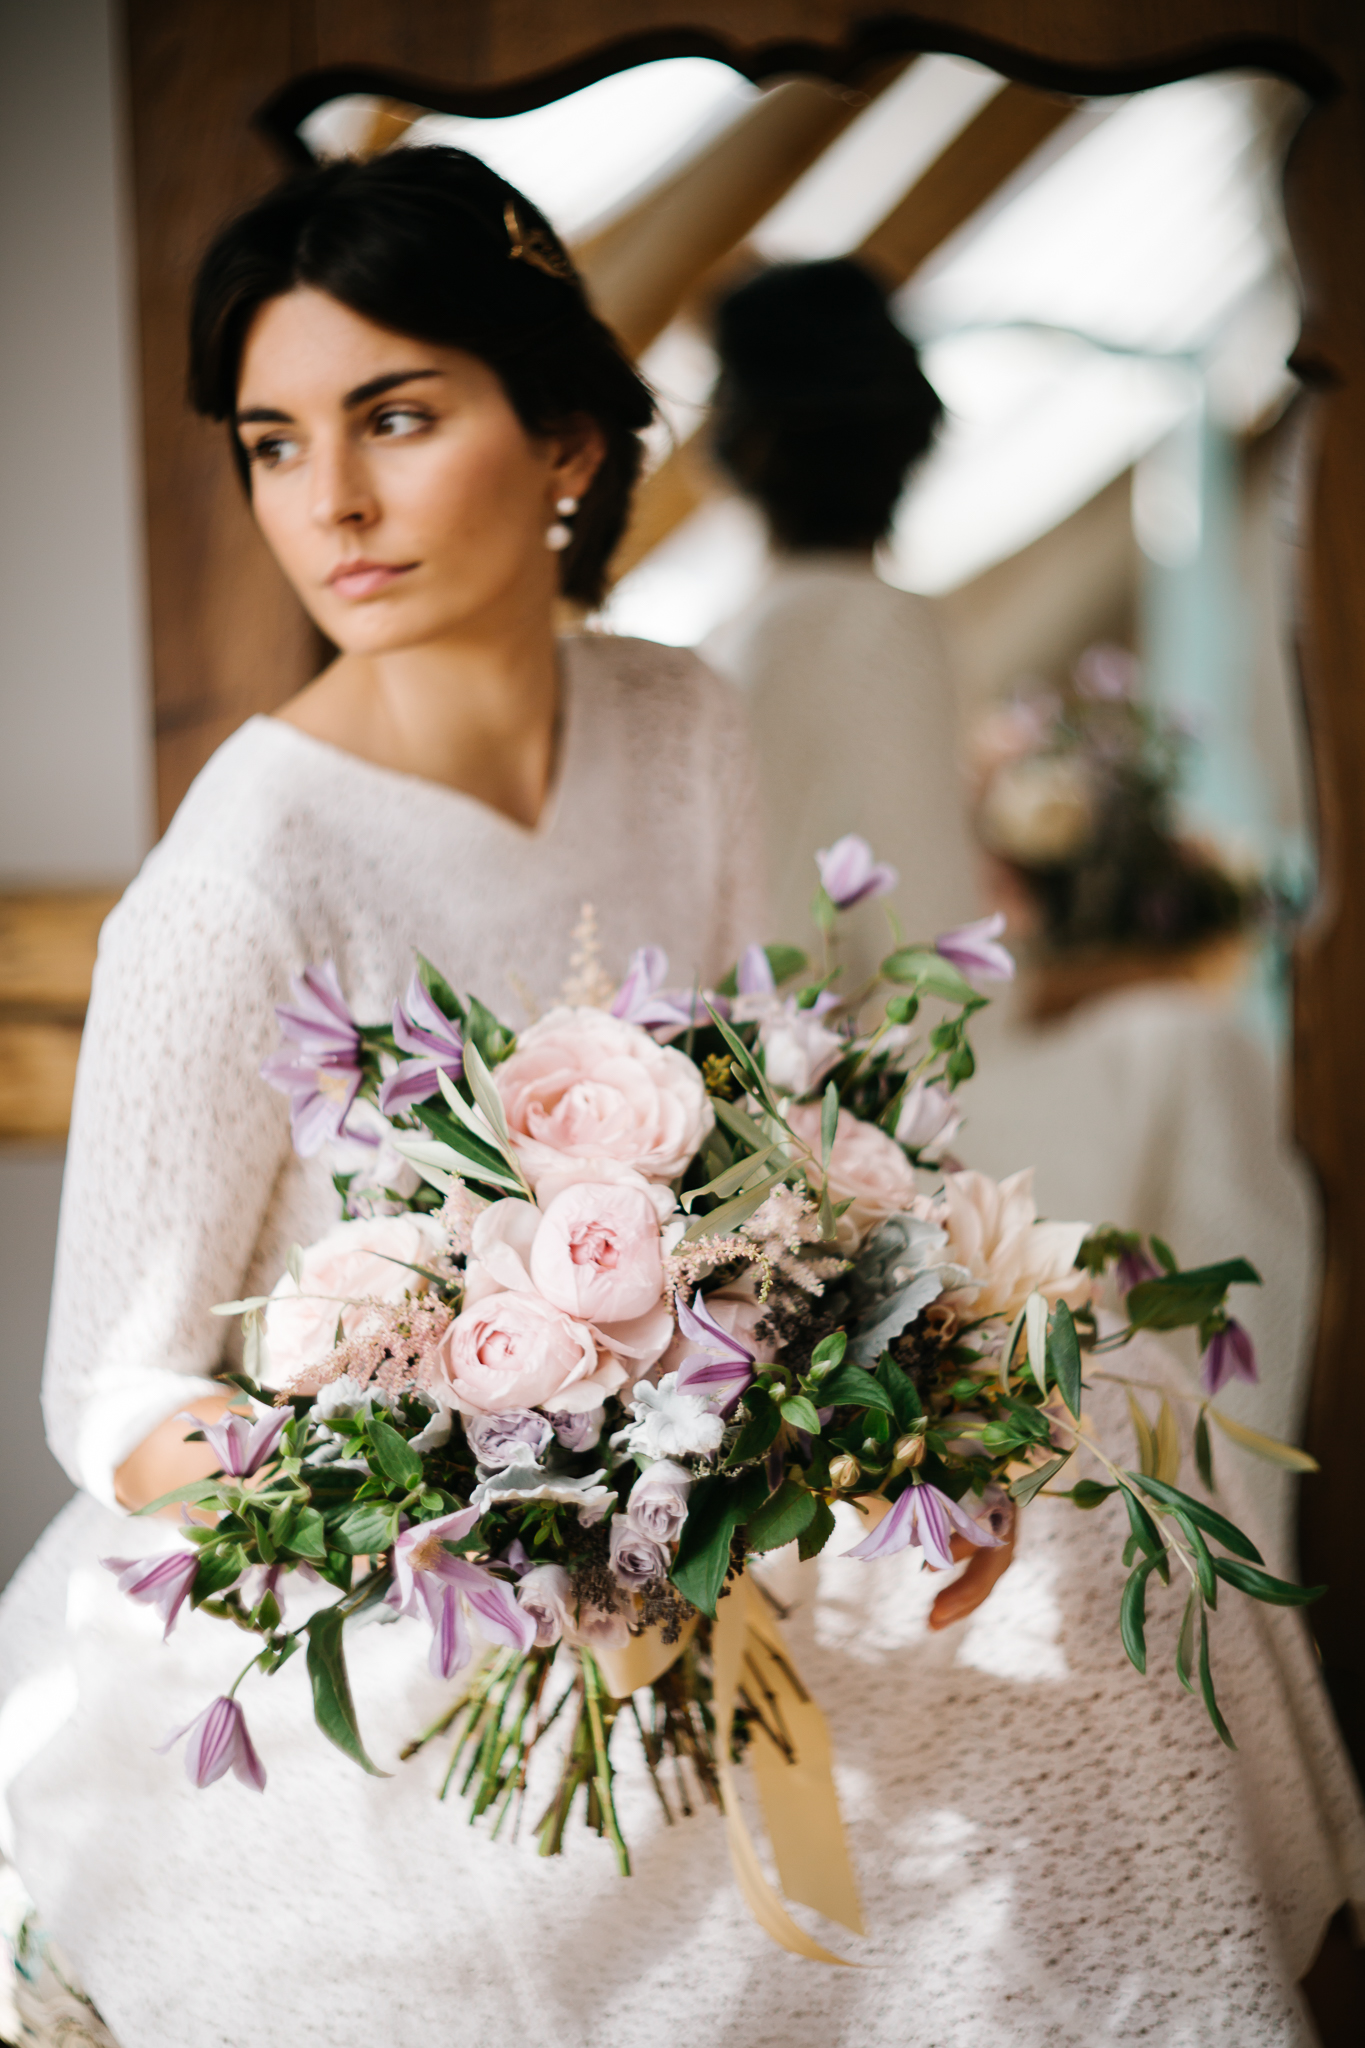 Blush violet dusty green wedding flowers by Ponk Rentals for Slovakian bride in vintage lace dress